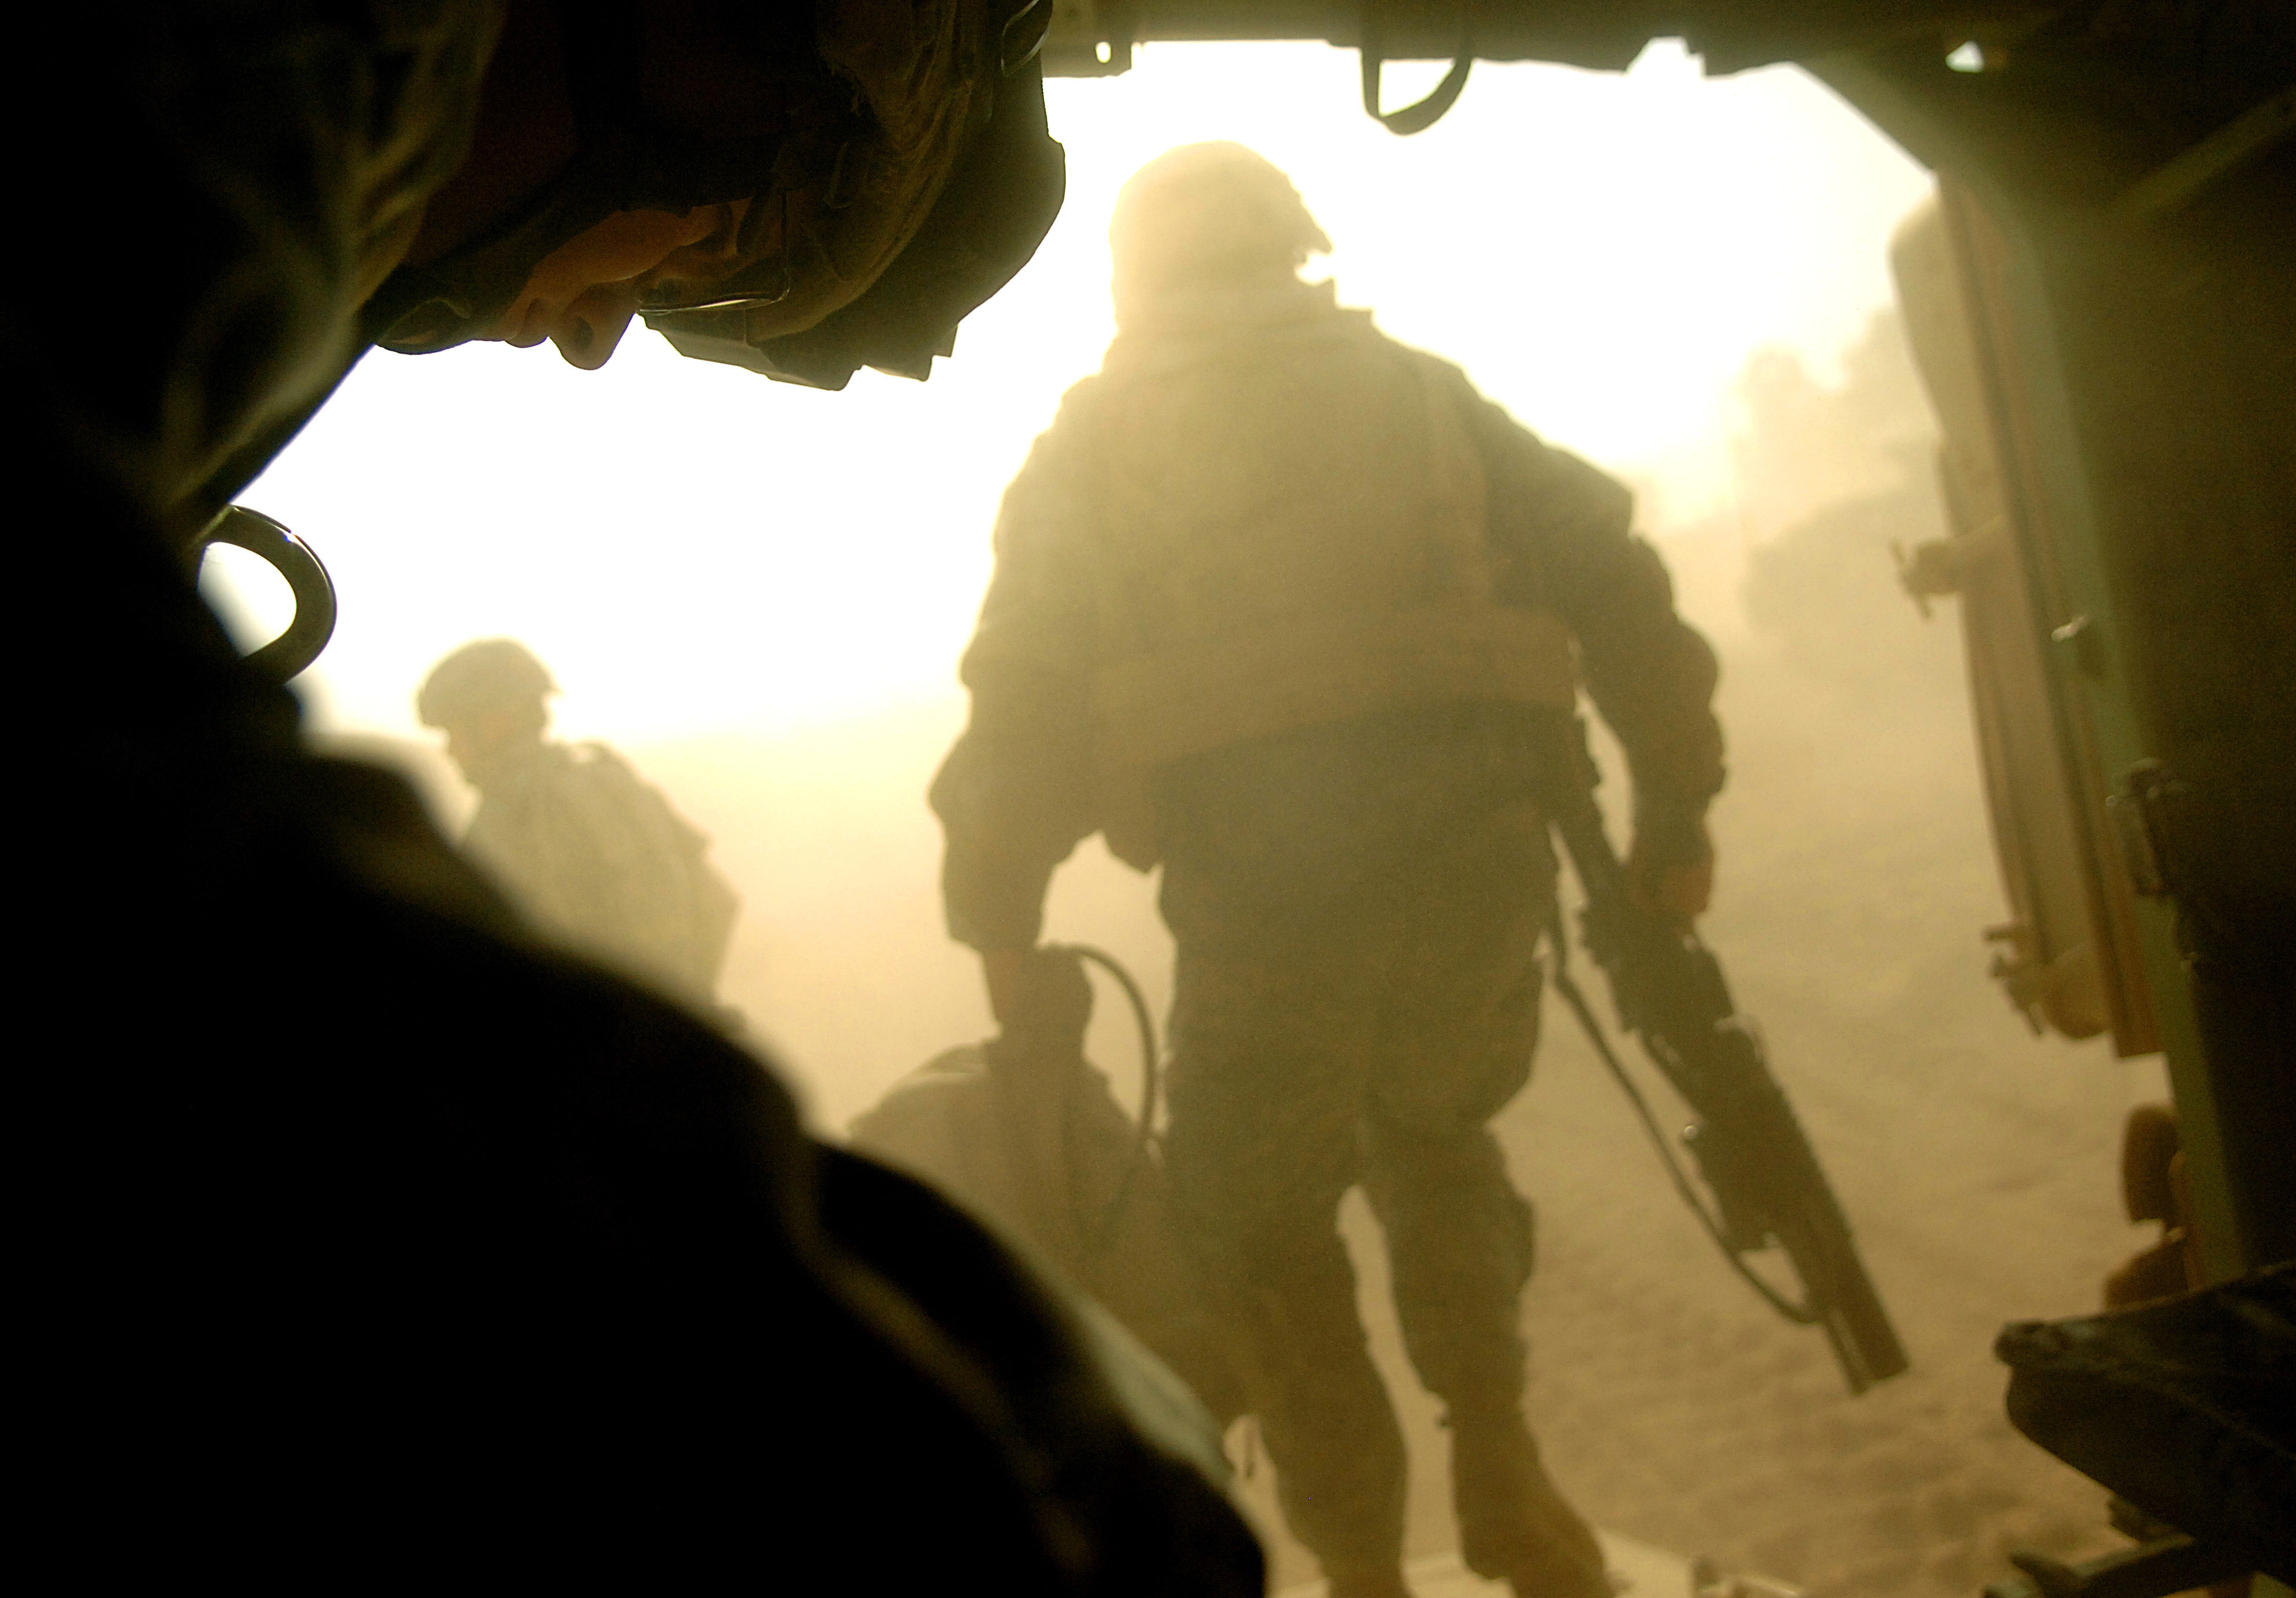 060903-F-1644L-058 U.S. Army Spc. Jeffery Moore (left) prepares to exit an M 2 Bradley fighting vehicle at Camp Ar Ramadi, Iraq, following a raid in the Tameem district of Ramadi, Iraq, on Sept. 3, 2006.  Moore is assigned to Bravo Company, 2nd Battalion, 6th Infantry Regiment, 1st Armored Division.  DoD photo by Tech. Sgt. Jeremy T. Lock, U.S. Air Force.  (Released)